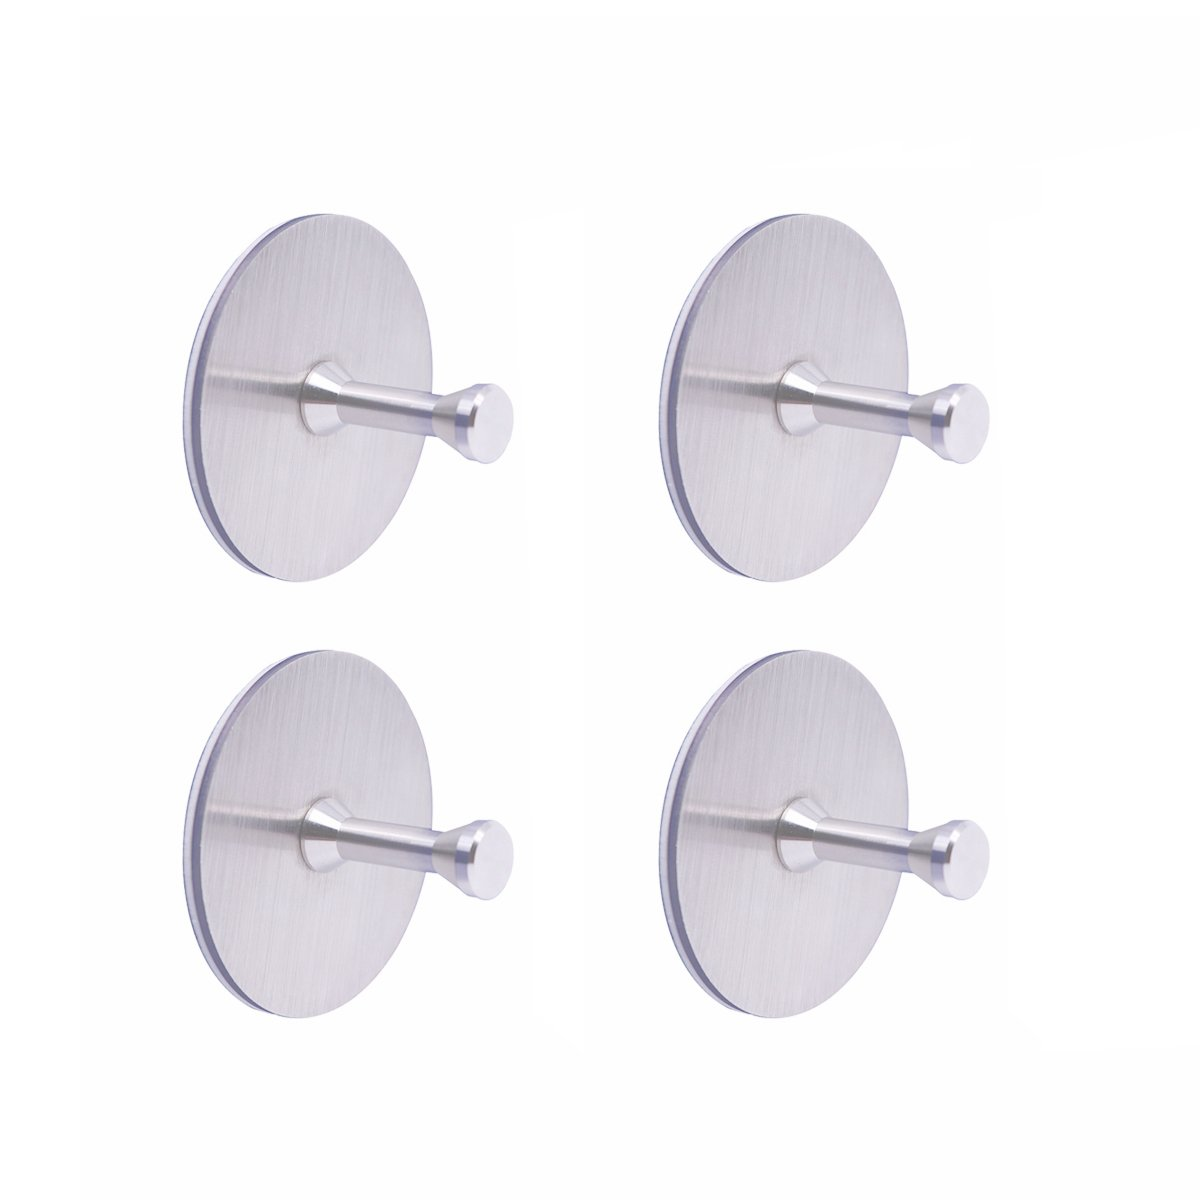 MOMO SZ Stainless Steel Hooks 3M Adhesive For Home Kitchen Bath Hang Tool(4pcs Round Hooks)